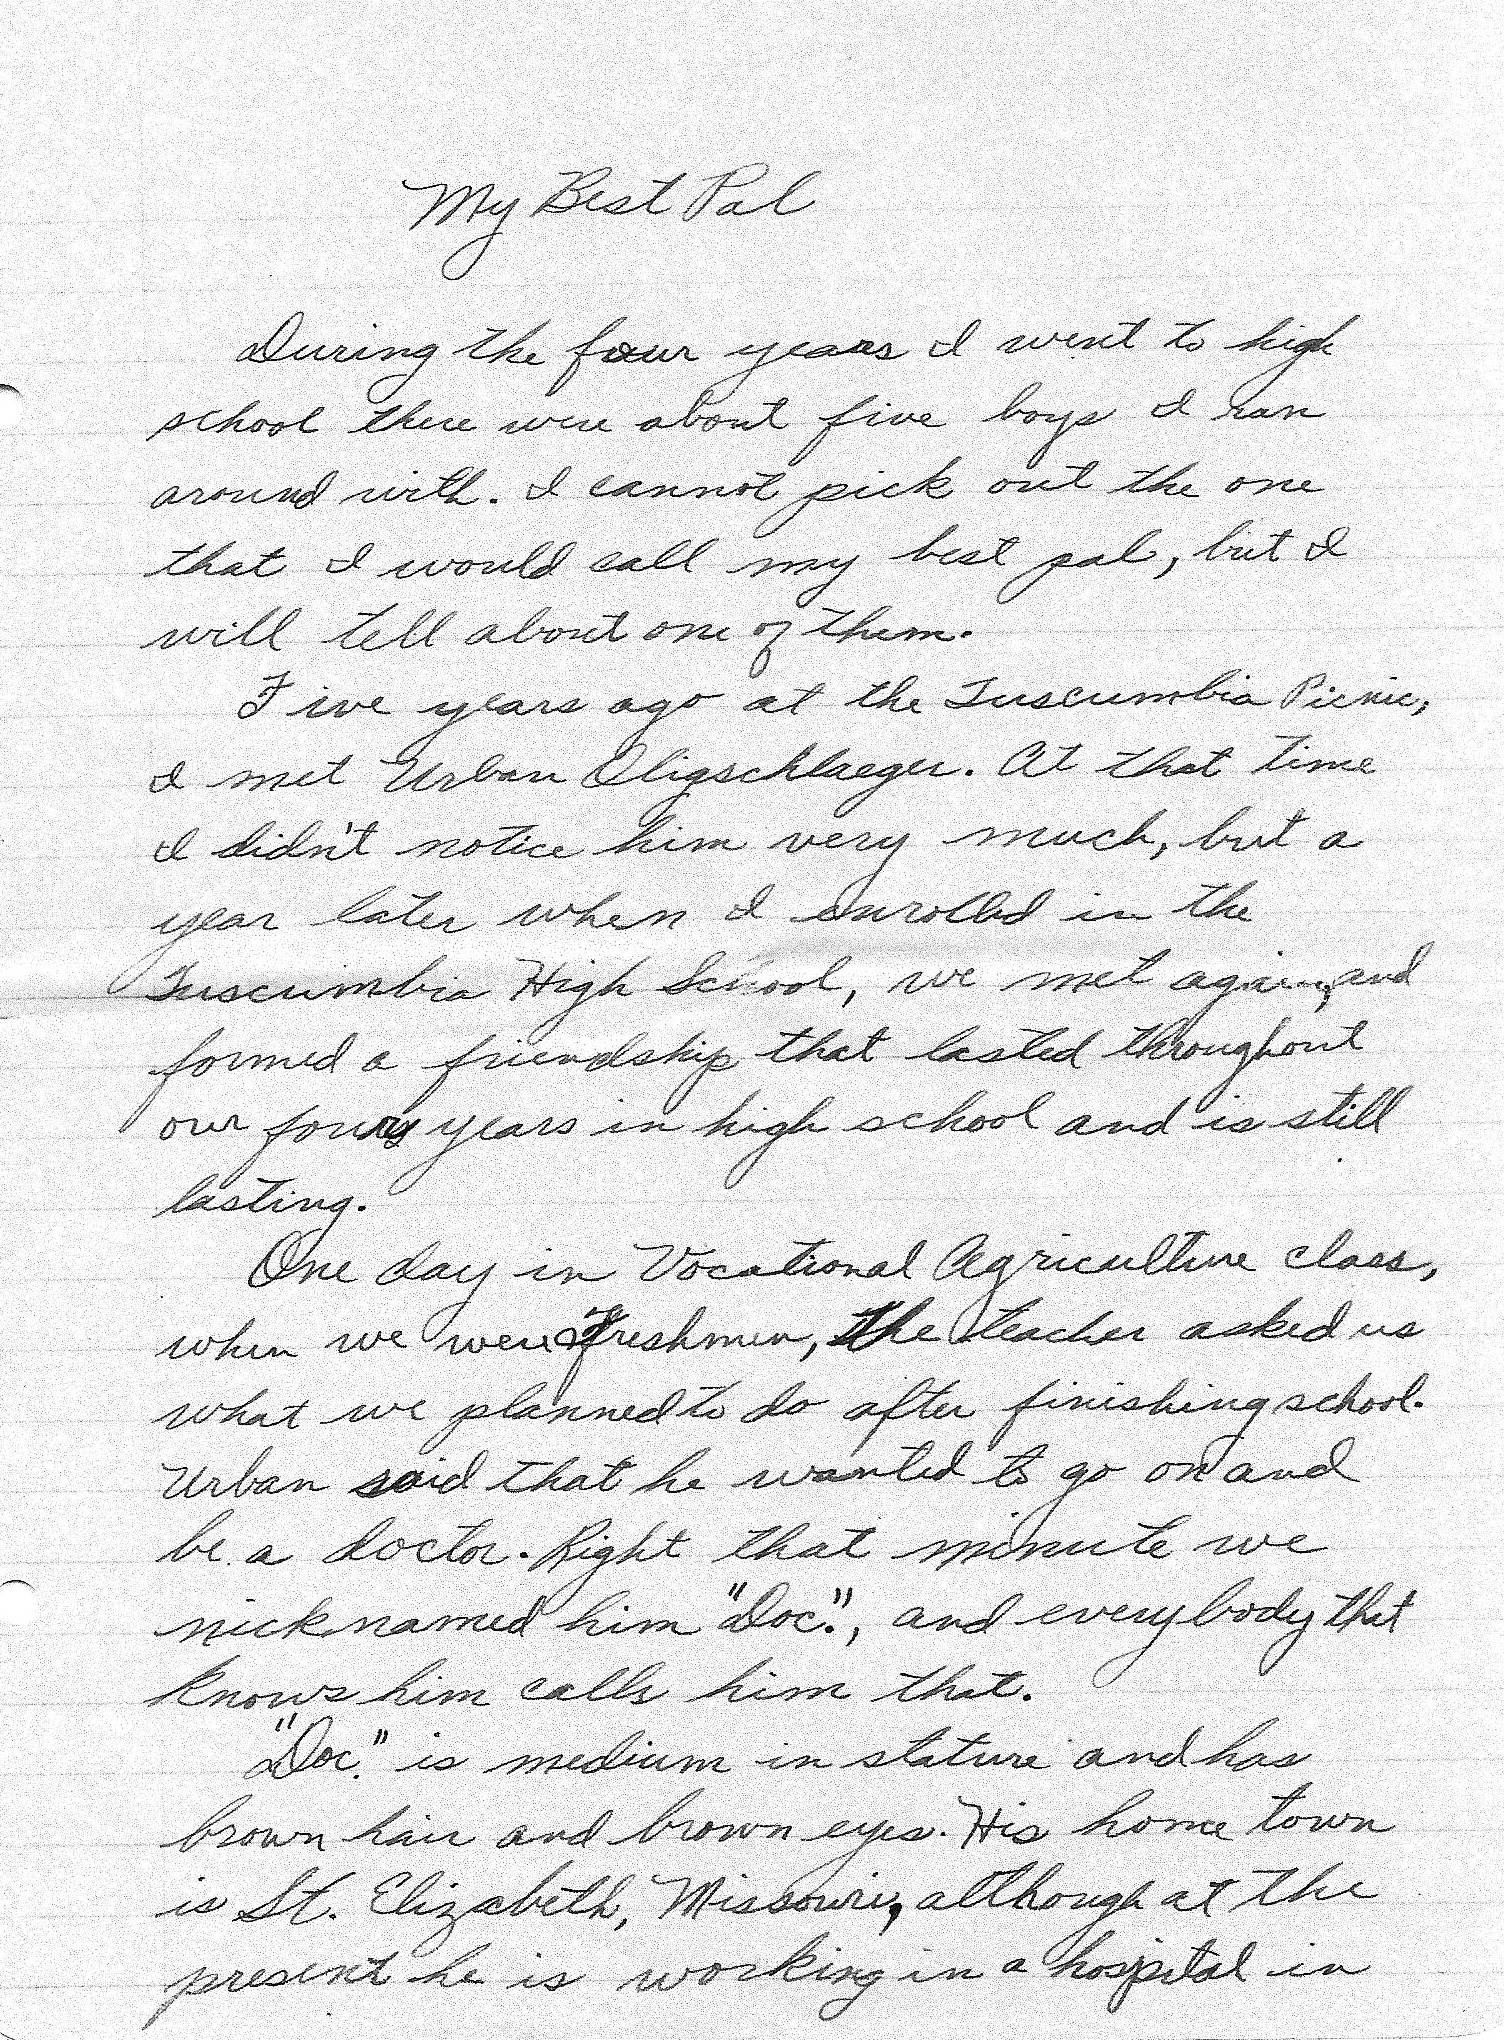 president s page miller county museum historical society Head Football Coach Resume 32 otis nixdorf letter